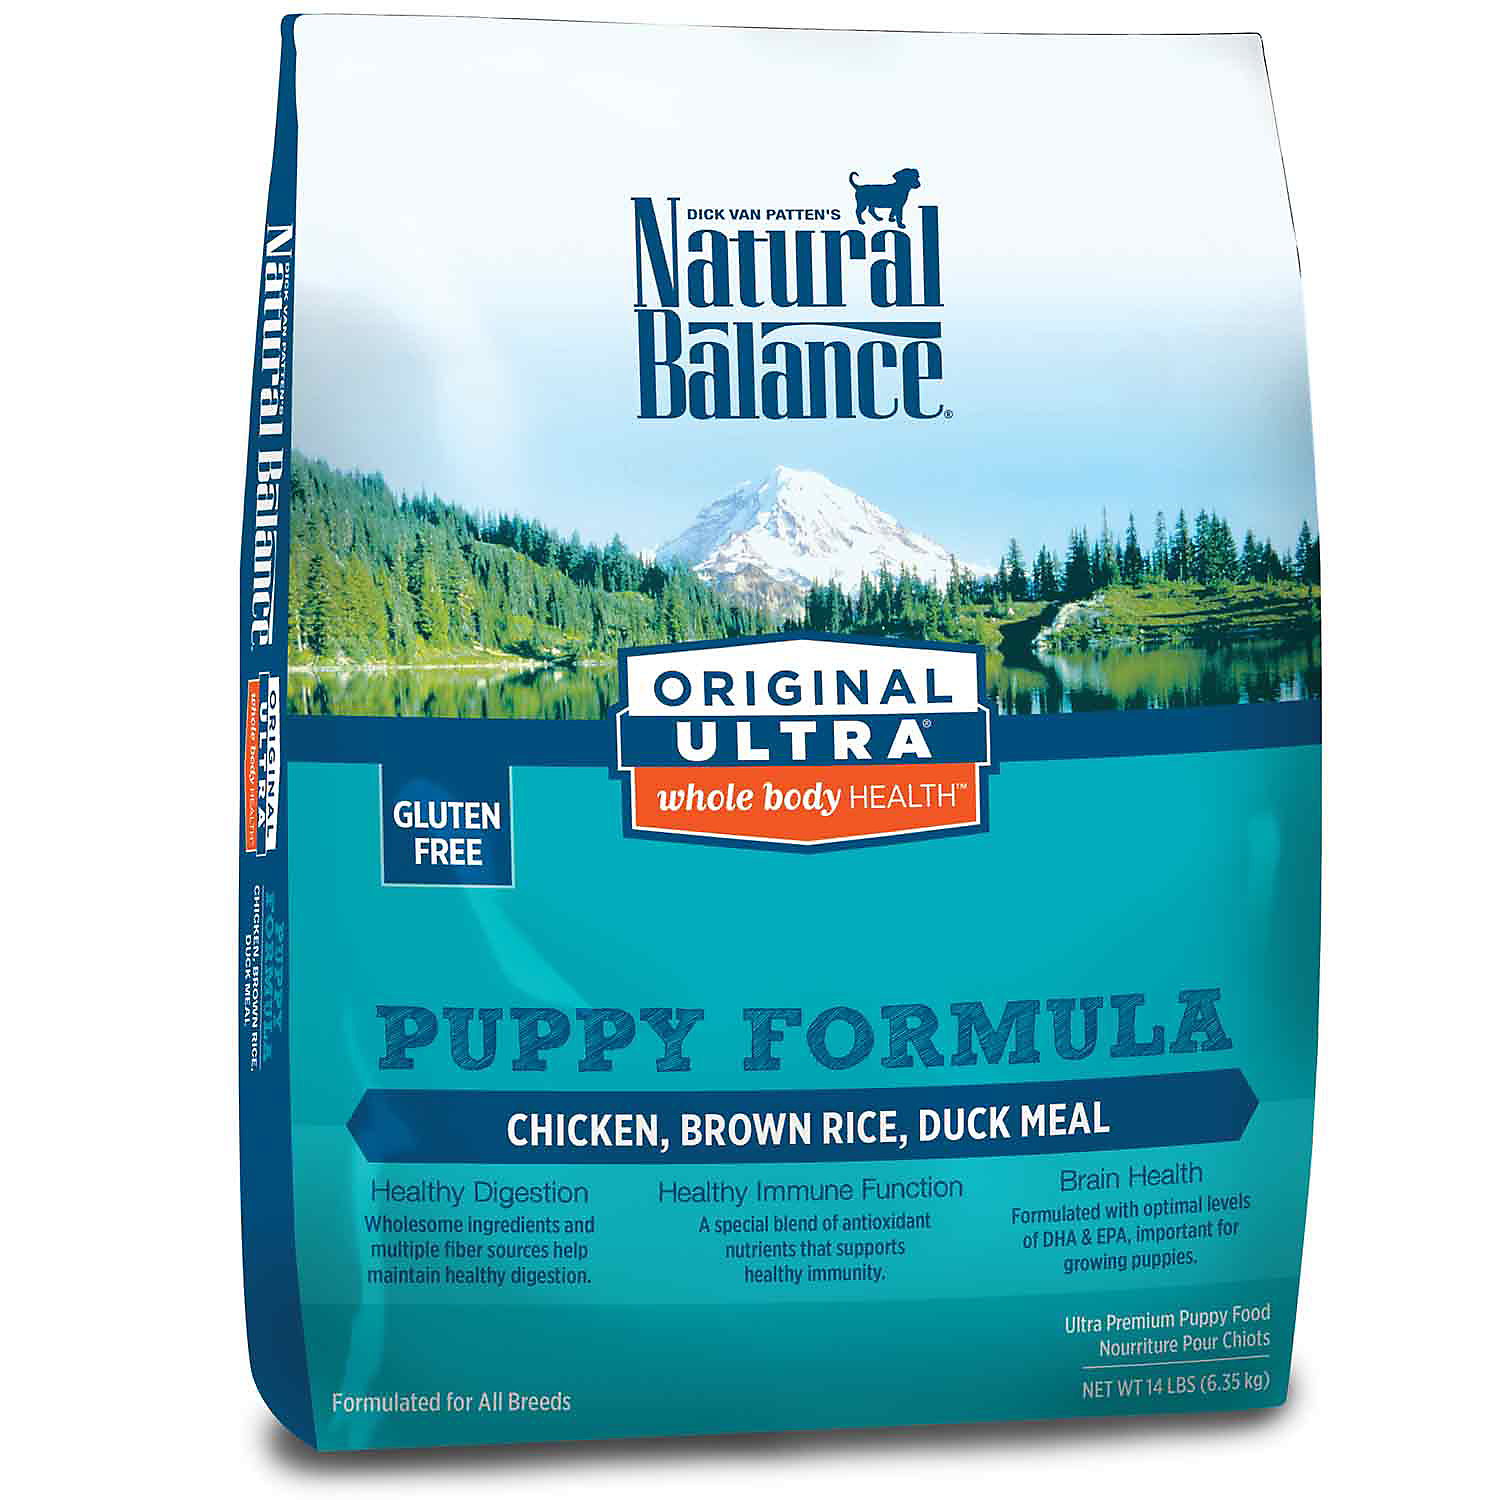 Natural Balance Original Ultra Whole Body Health Chicken Brown Rice Duck Meal Puppy Food 14 Lbs.